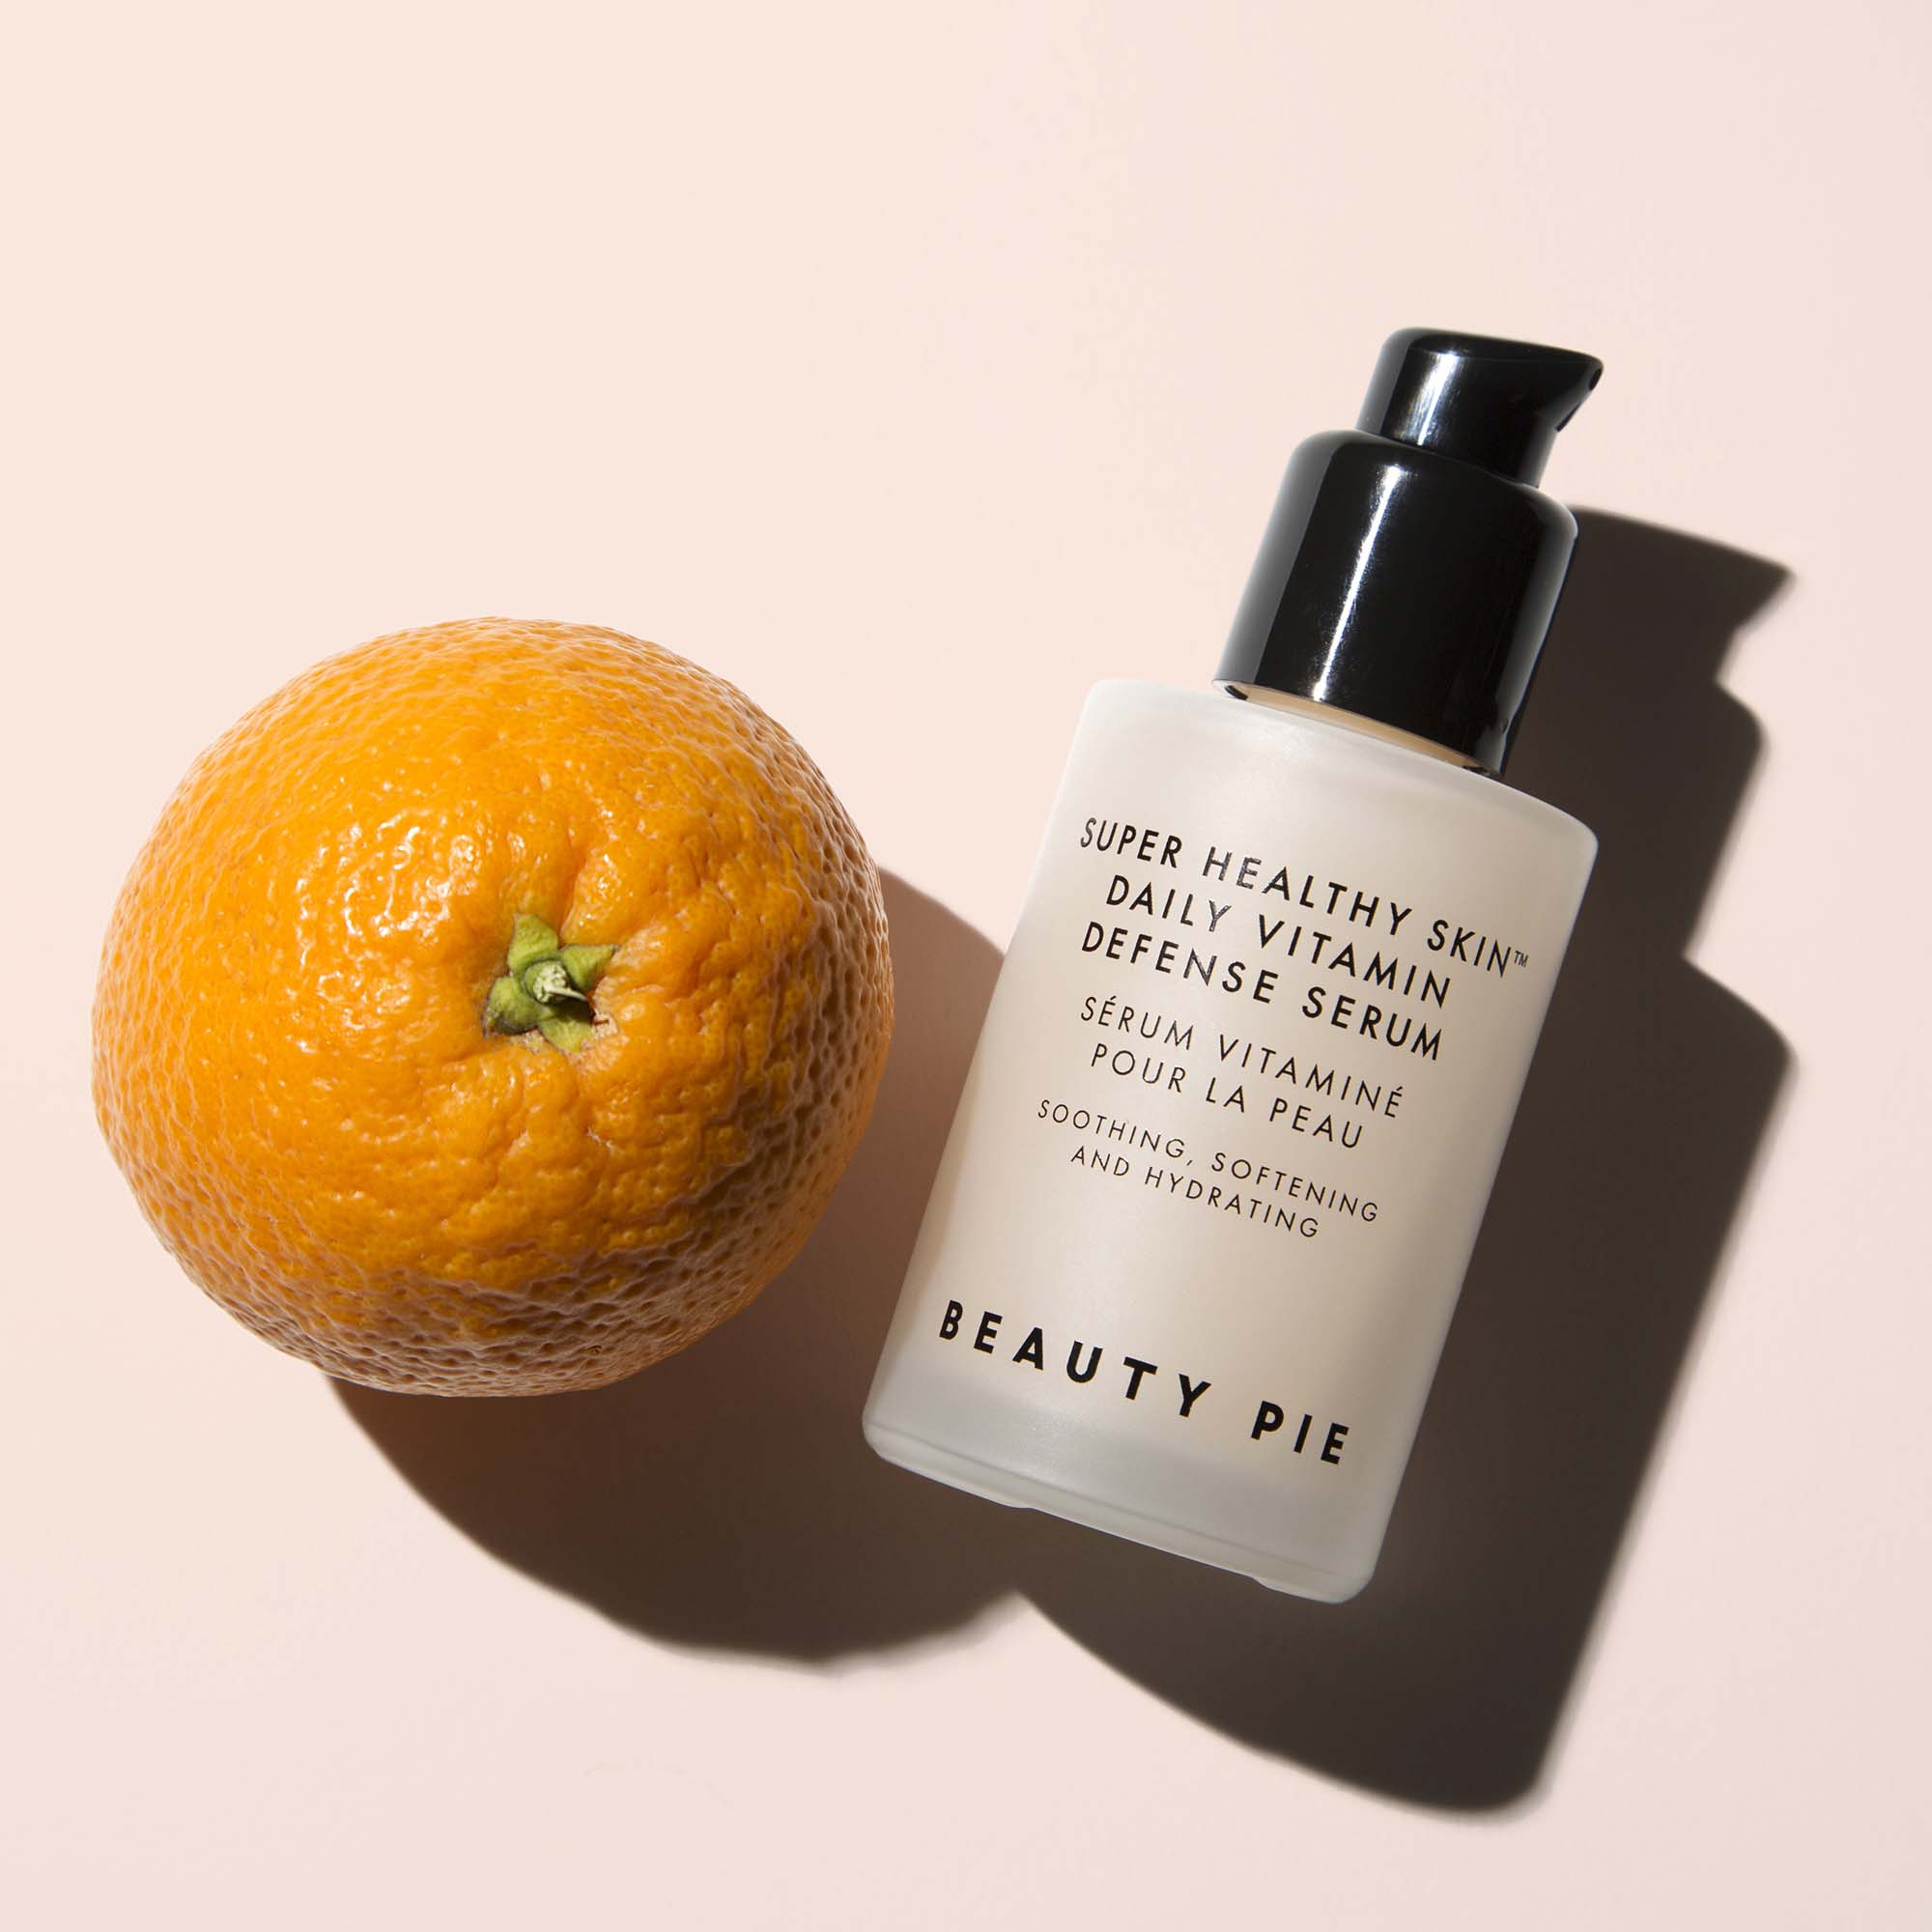 Super Healthy Skin™ Daily Vitamin C Defense Serum by Beauty Pie